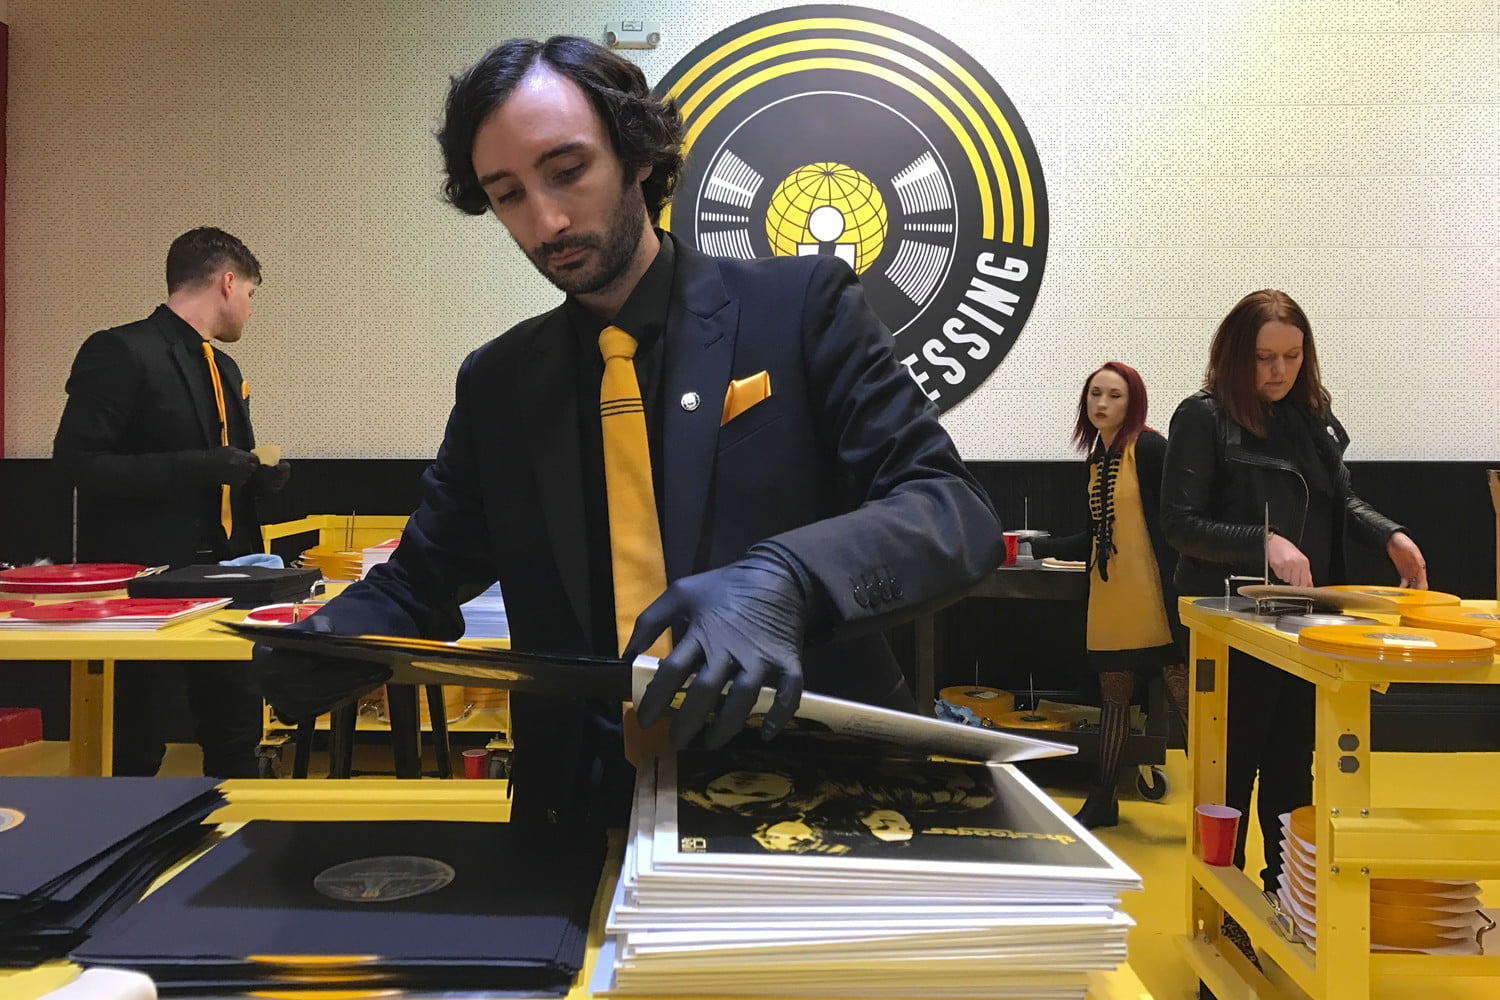 man-placing-records-into-covers-and-stacking-them_1